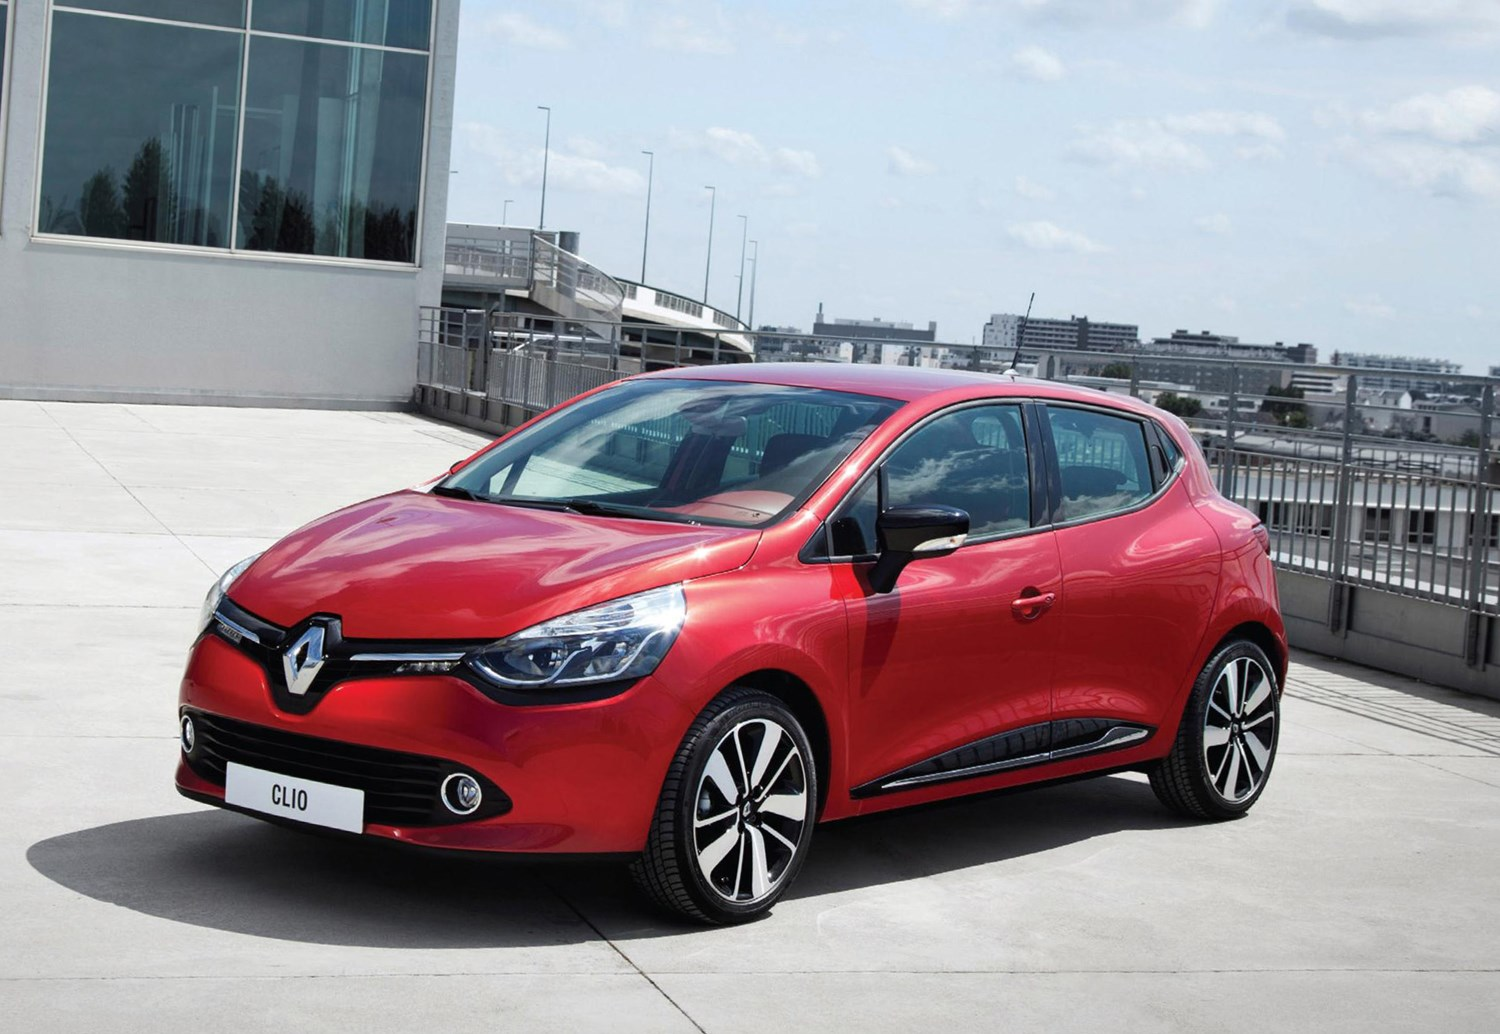 Renault Clio Review Features Practicality And Safety Parkers Skoda Fabia Estate Fuse Box Layout How Much Is It To Insure